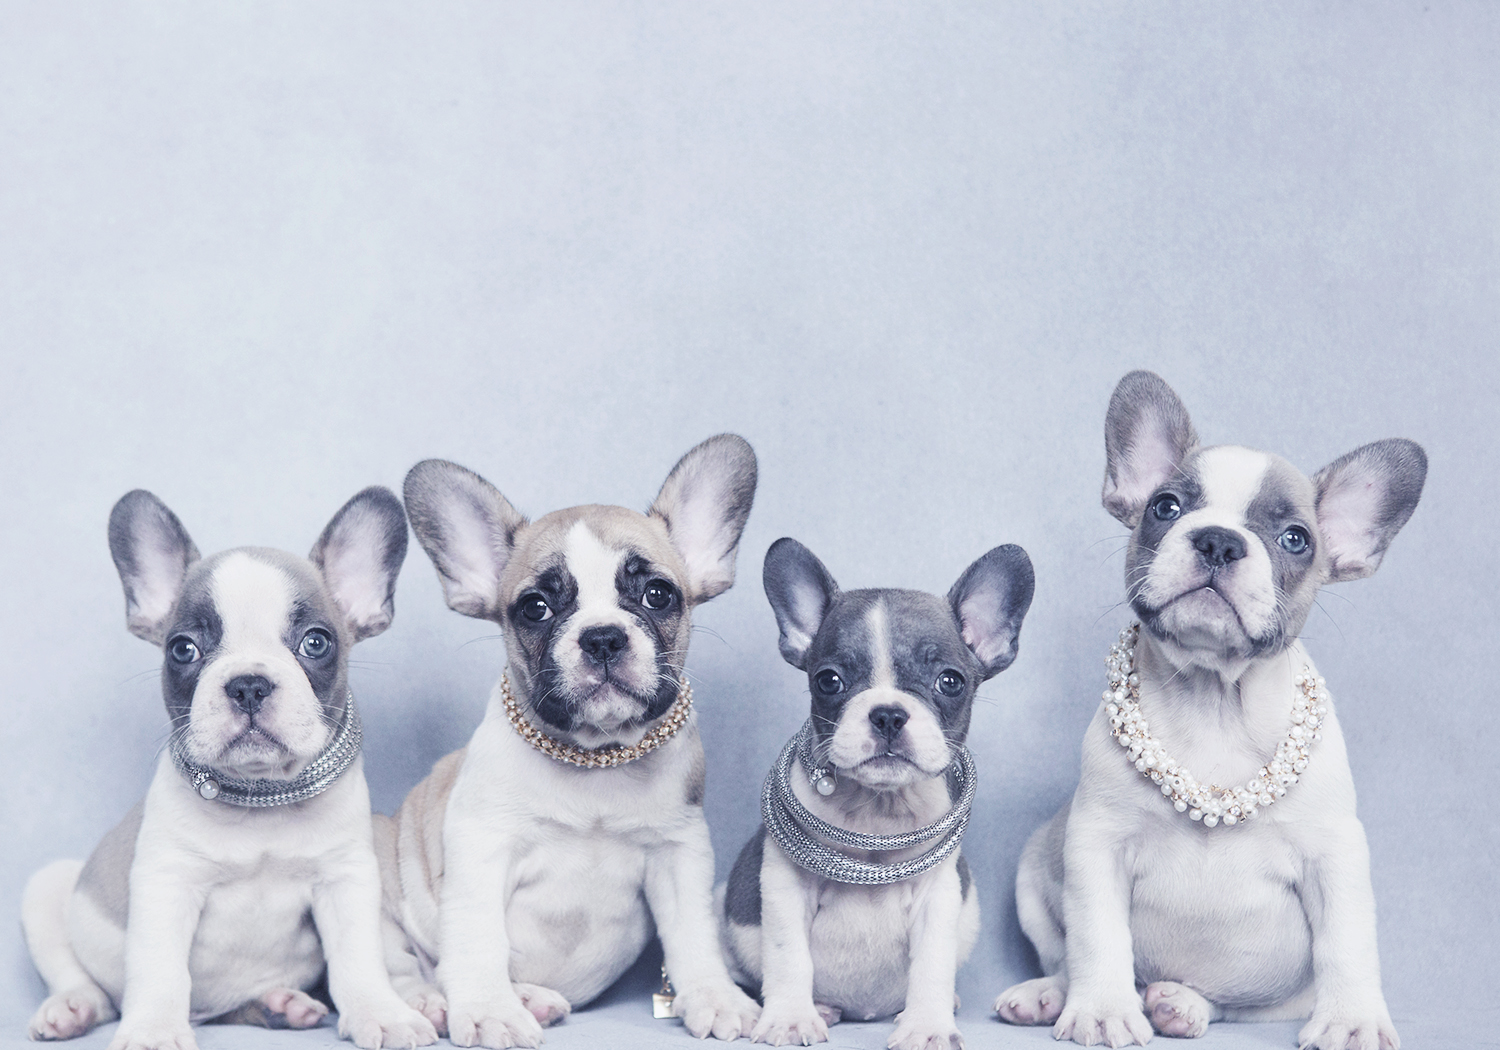 Photographing Dogs - Tips and tricks when working with all different breeds.